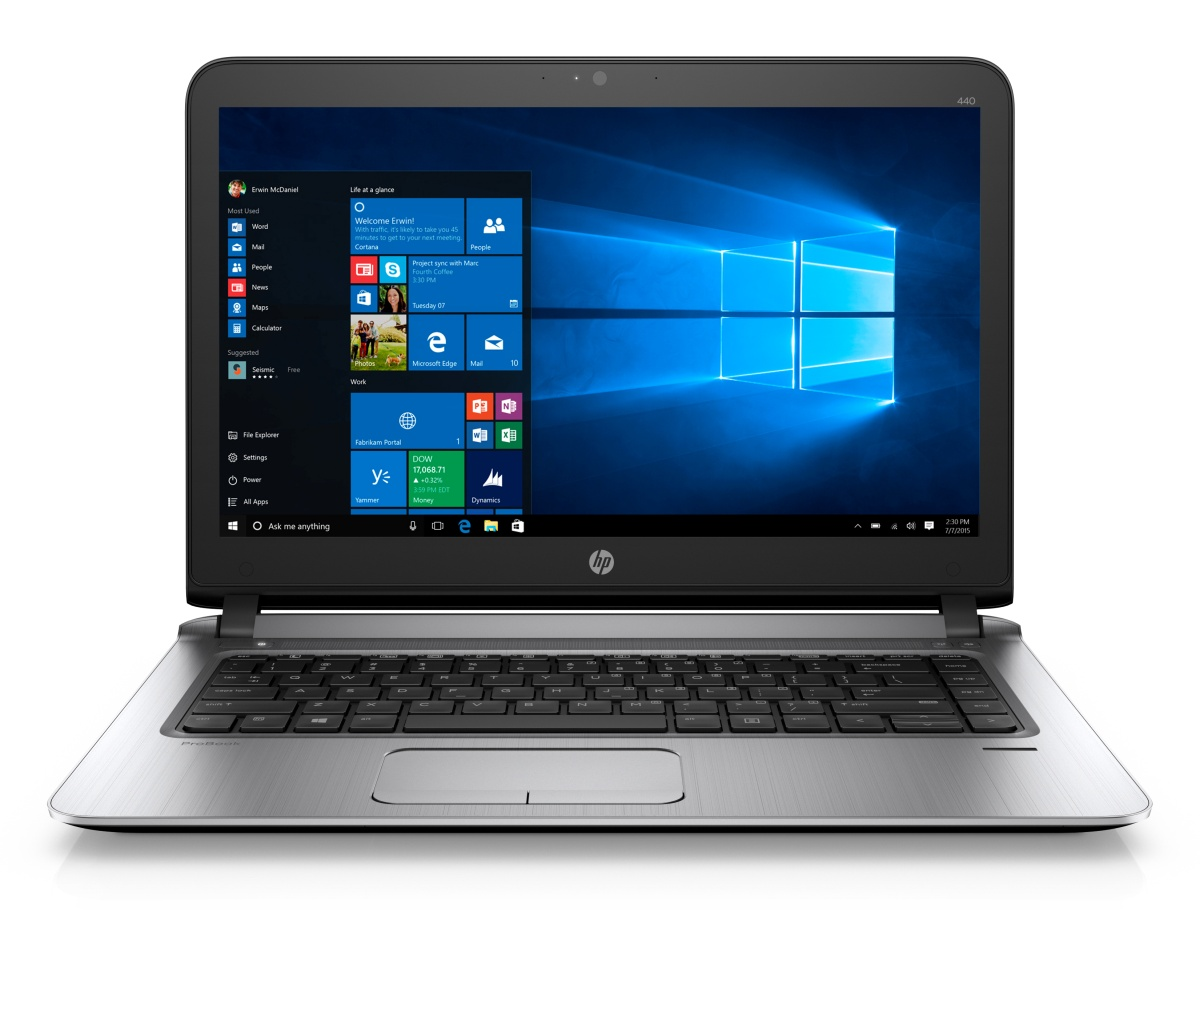 HP ProBook 440 G3 i5-6200U/4GB/256GB SSD+slot 2,5''/14'' FHD/Backlit kbd, Win 10 Pro downg W7P